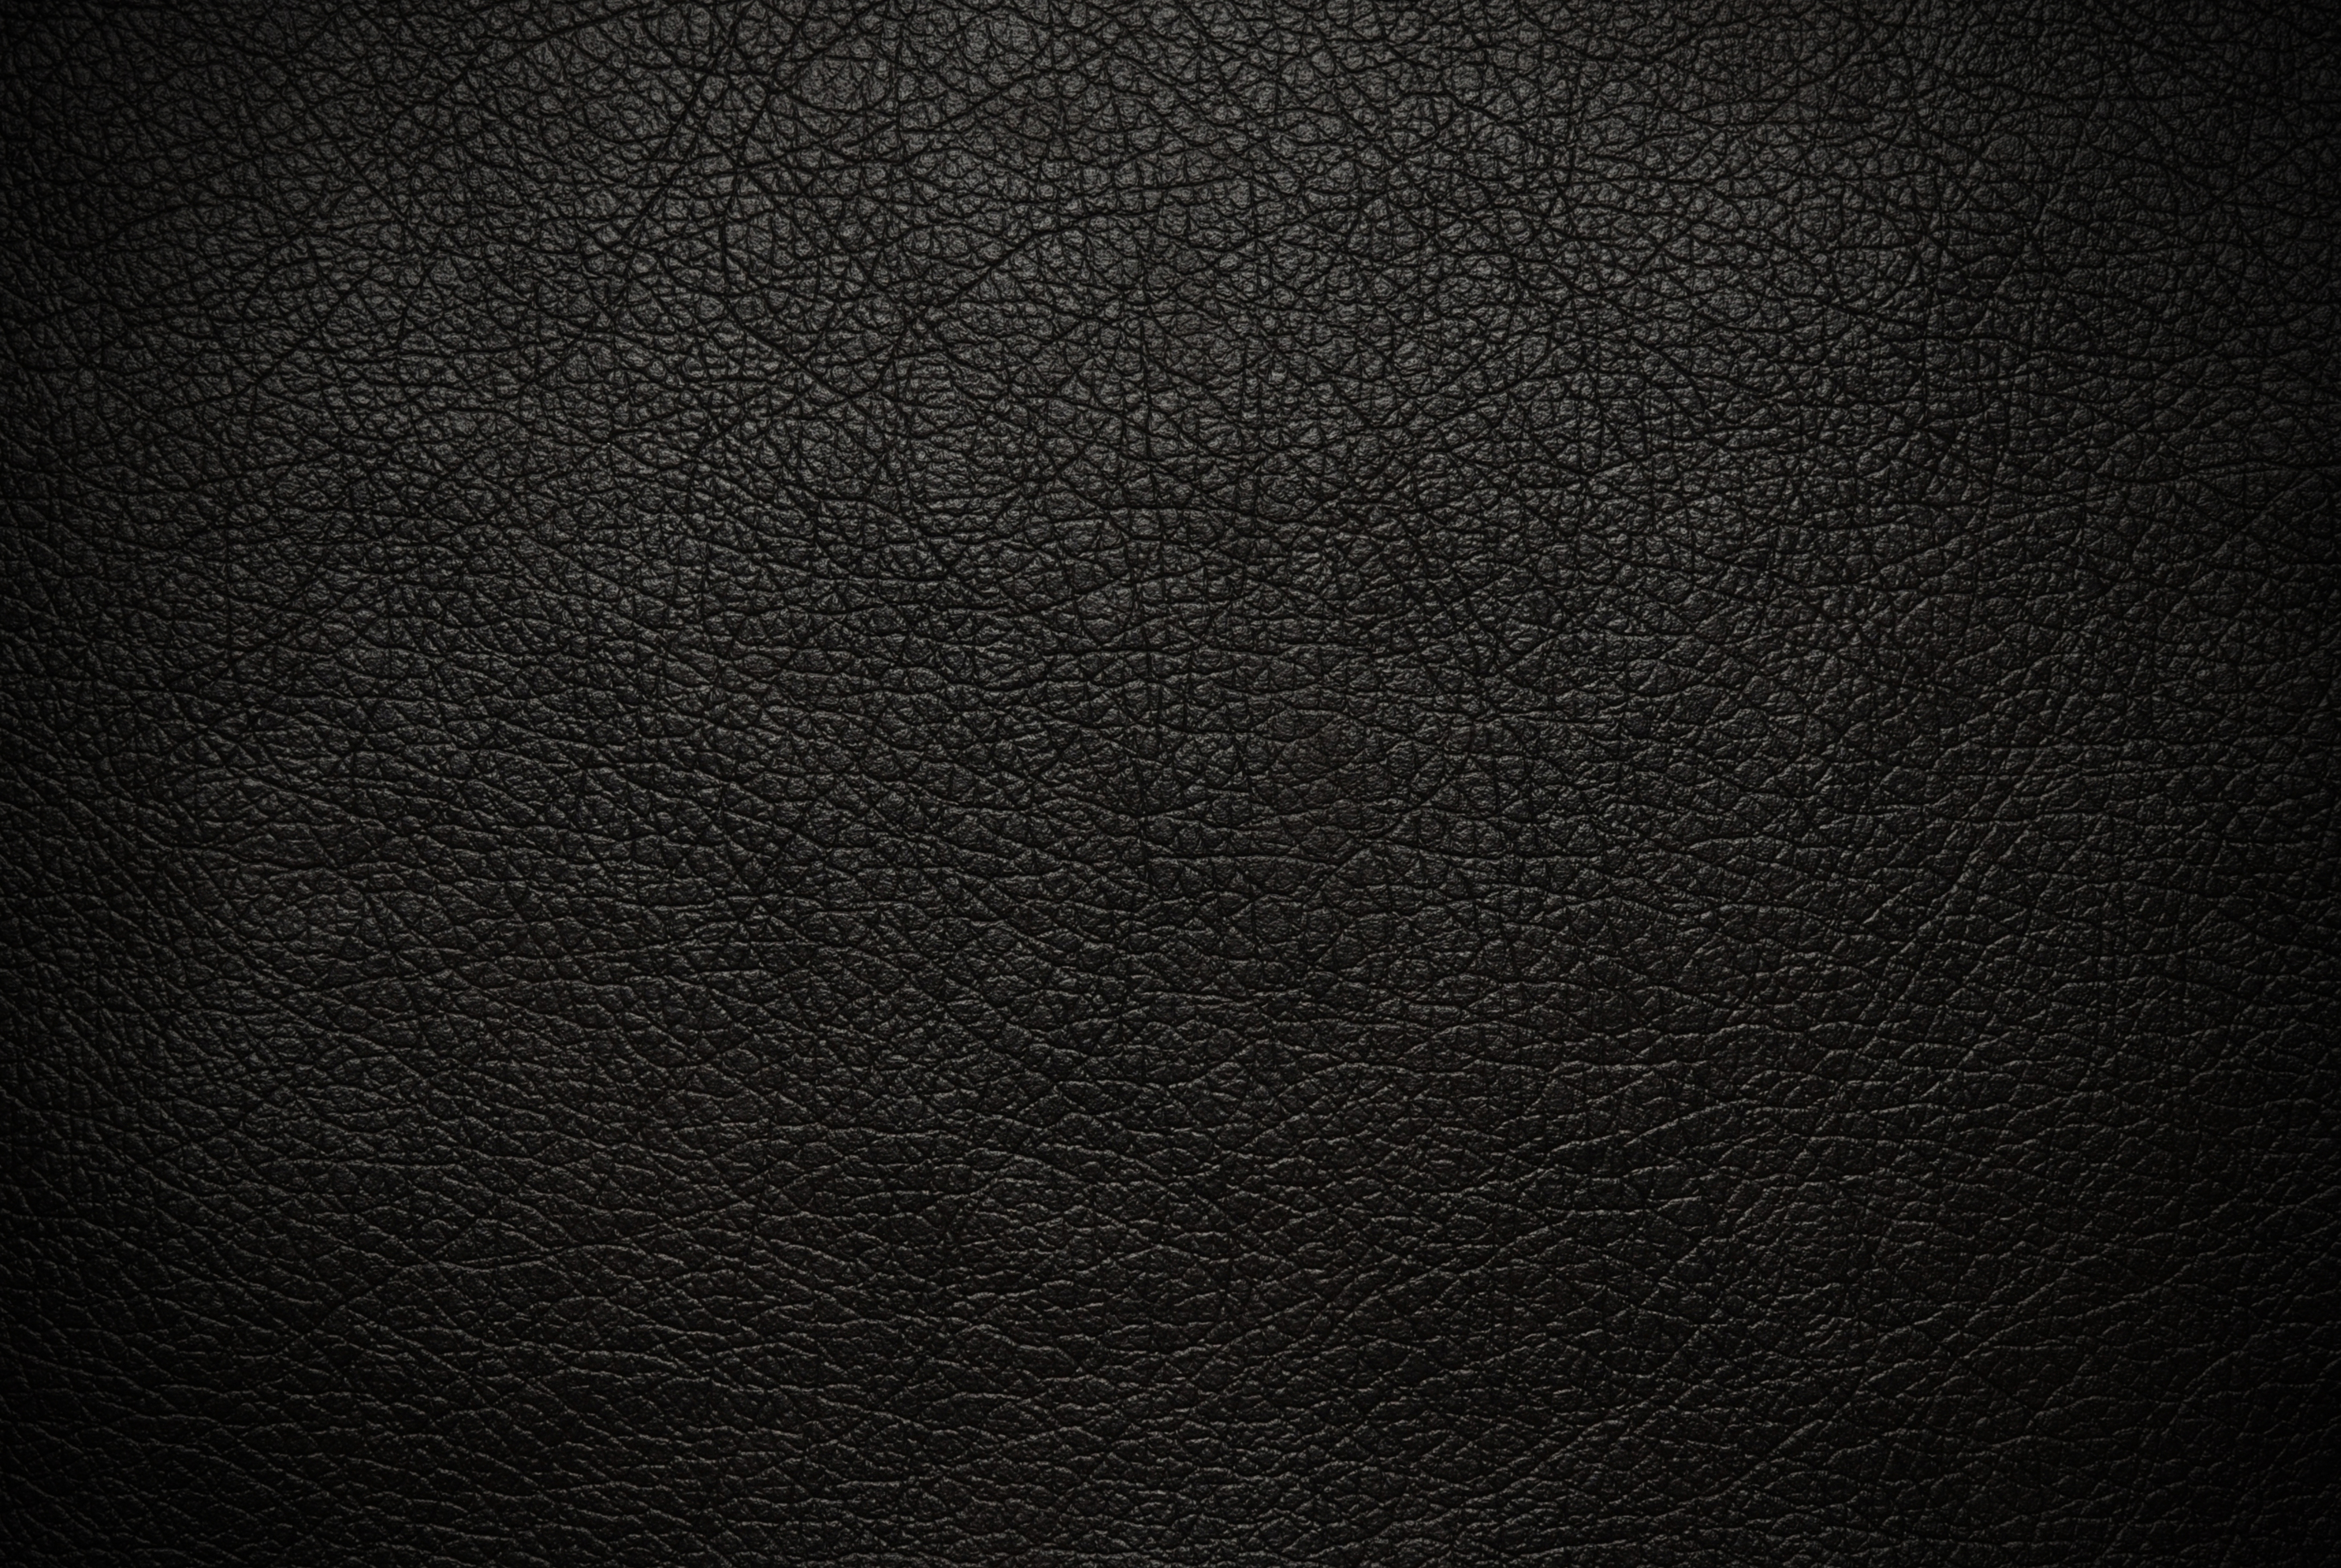 Leather black cracked background texture wallpaper   ForWallpaper 5000x3350